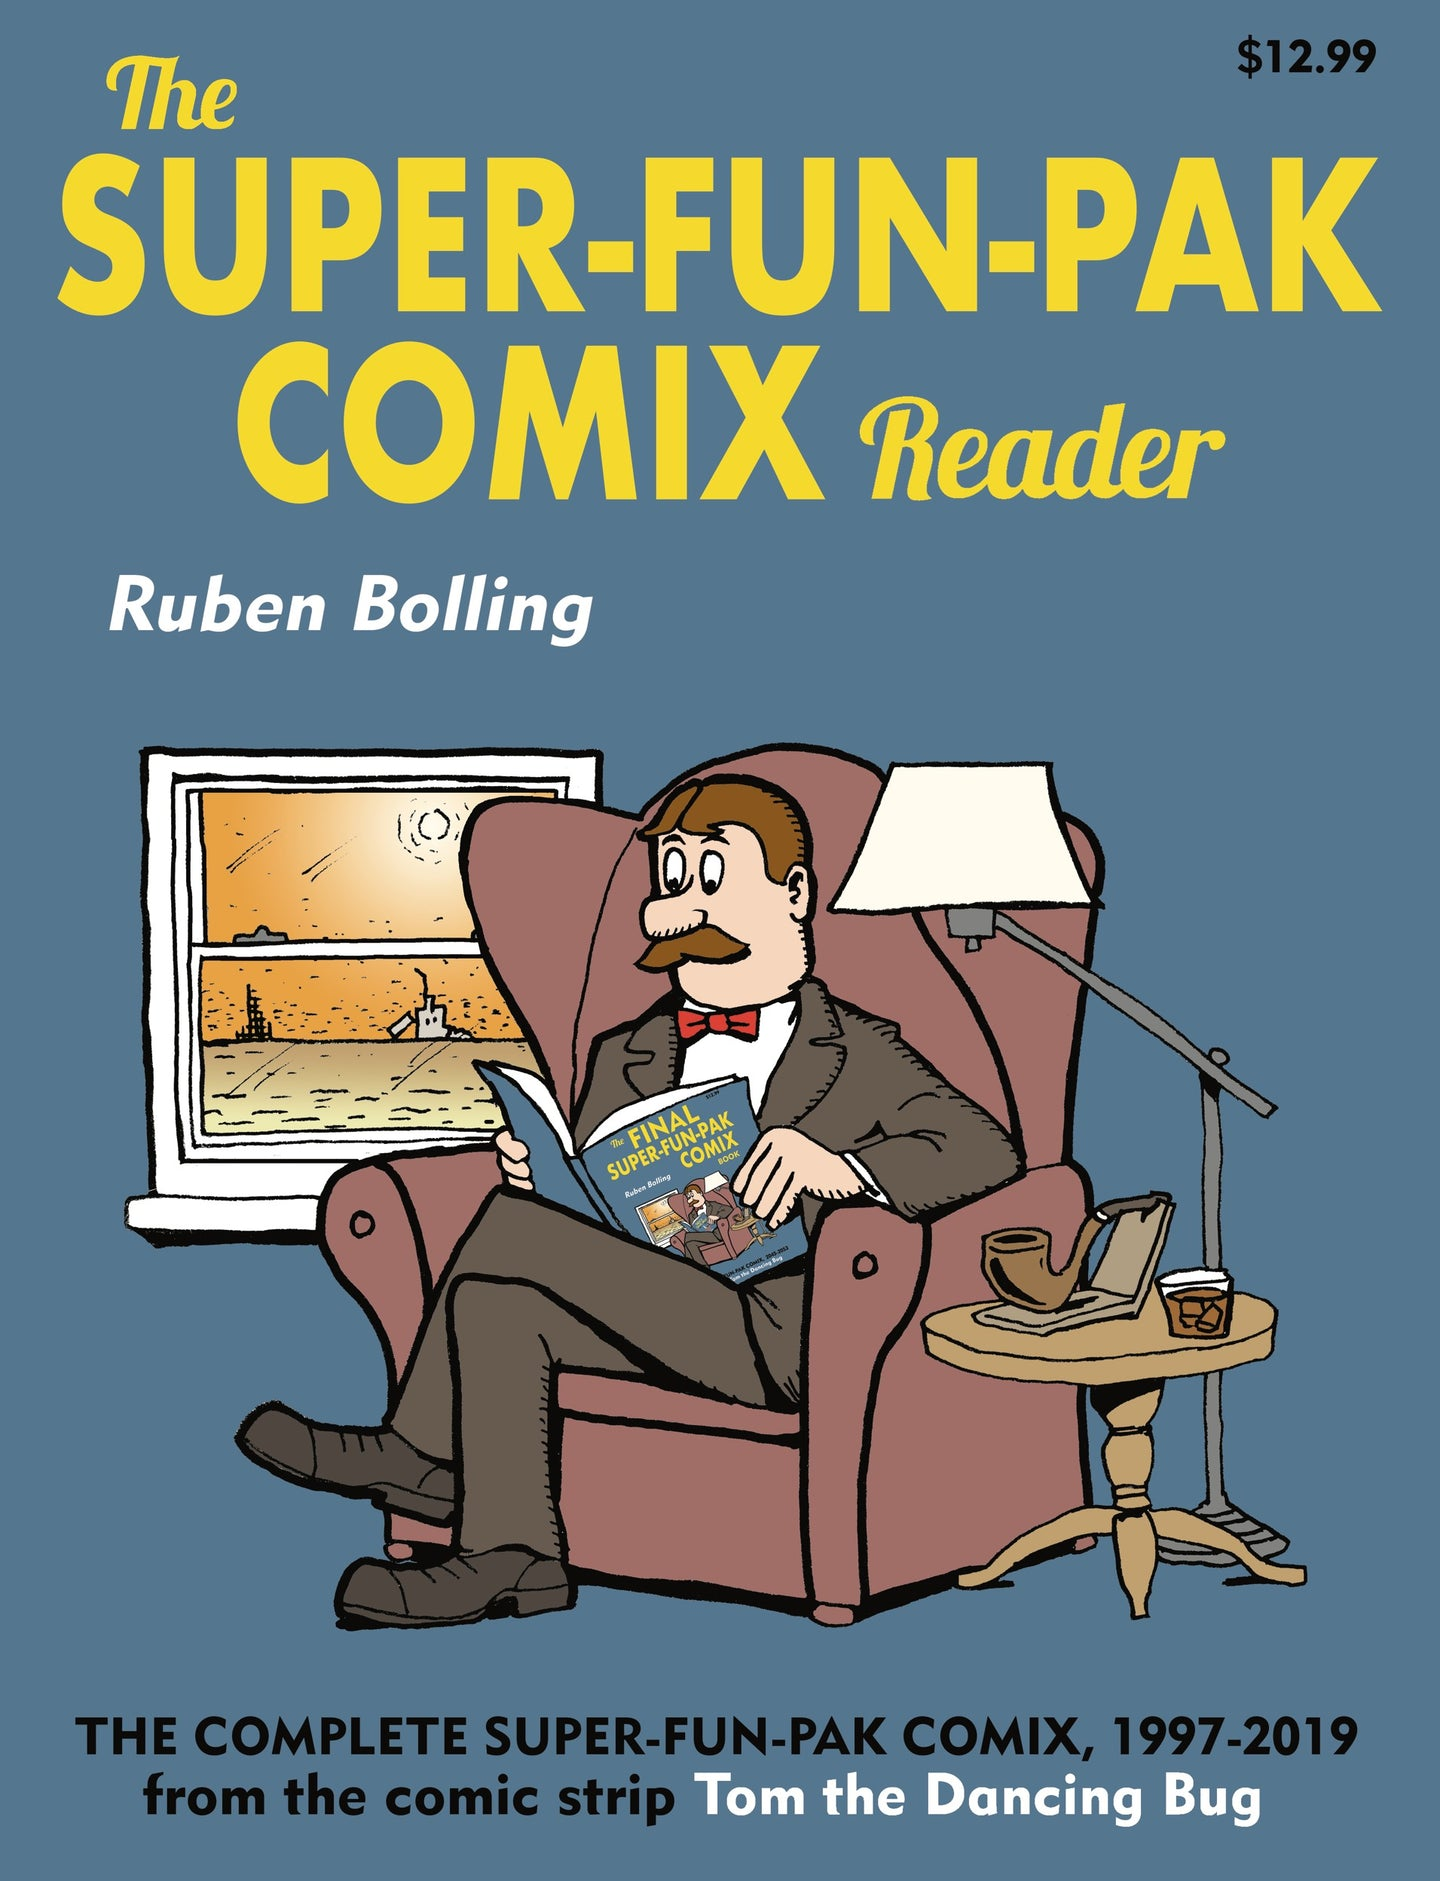 *SITE EXCLUSIVE* The Super-Fun-Pak Comix Reader